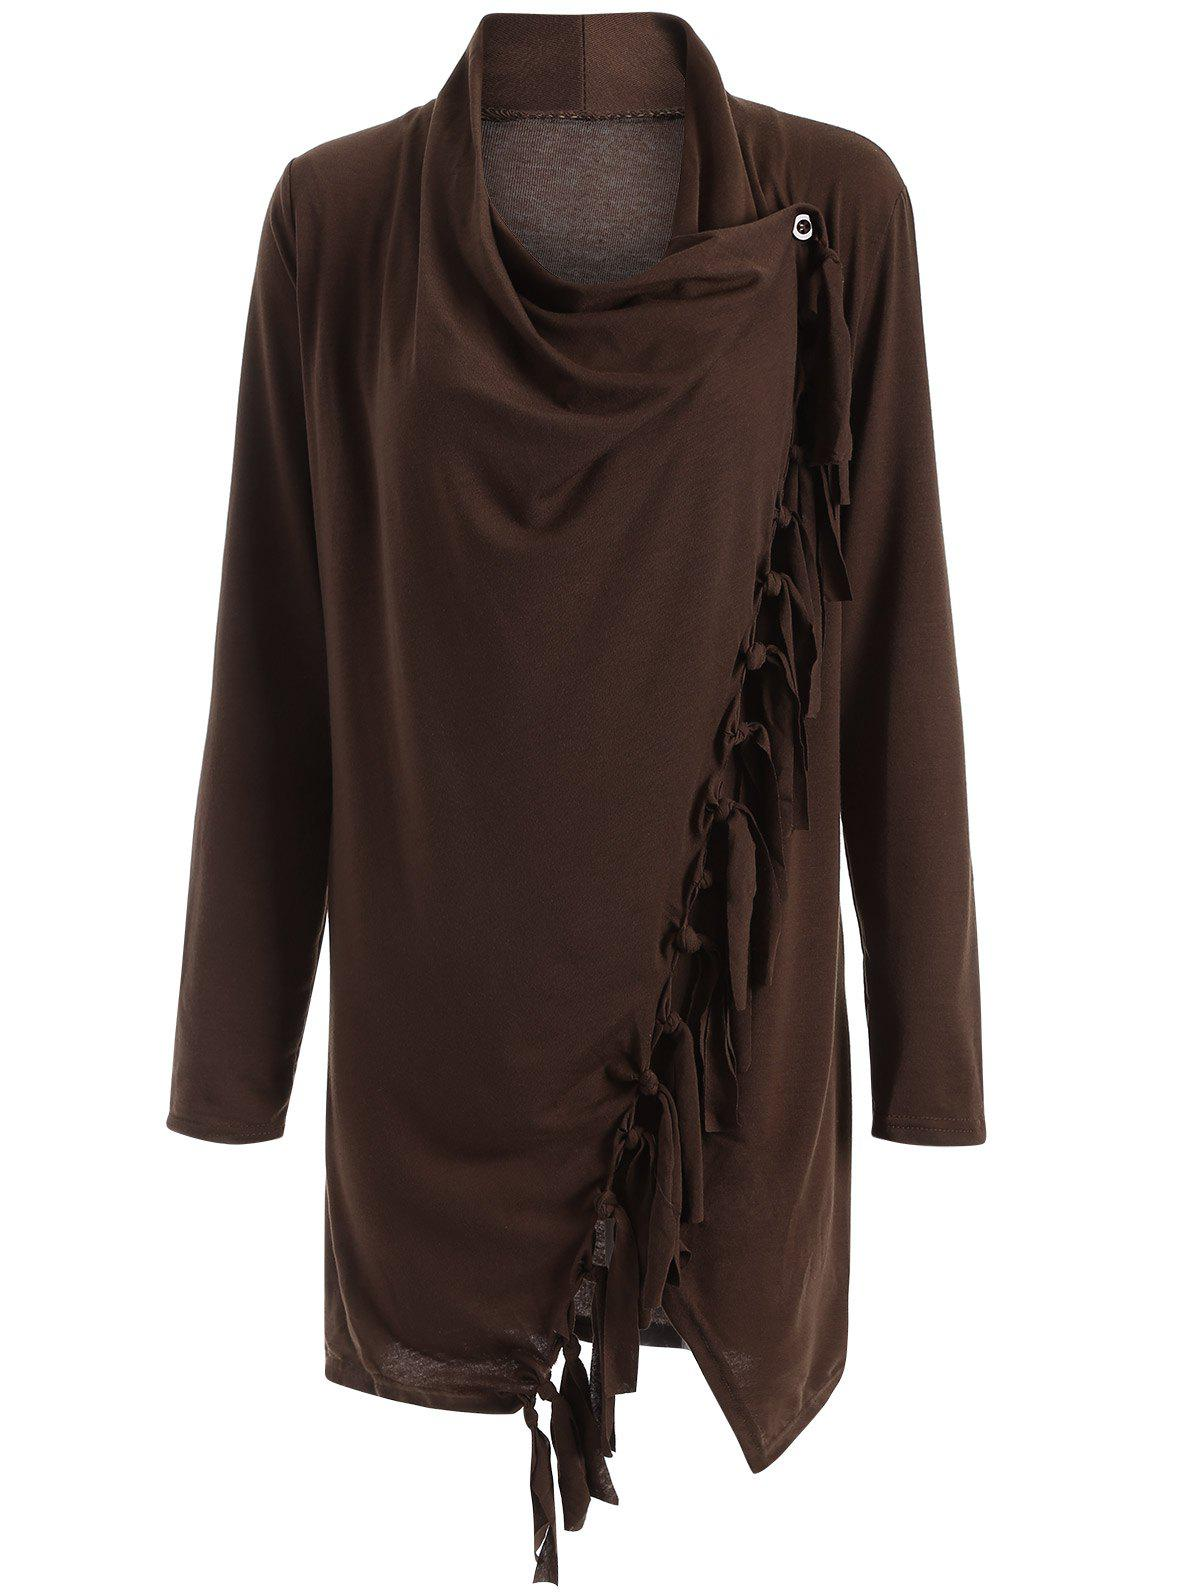 Long Sleeve Tassels Side Button CapeWomen<br><br><br>Size: M<br>Color: COFFEE